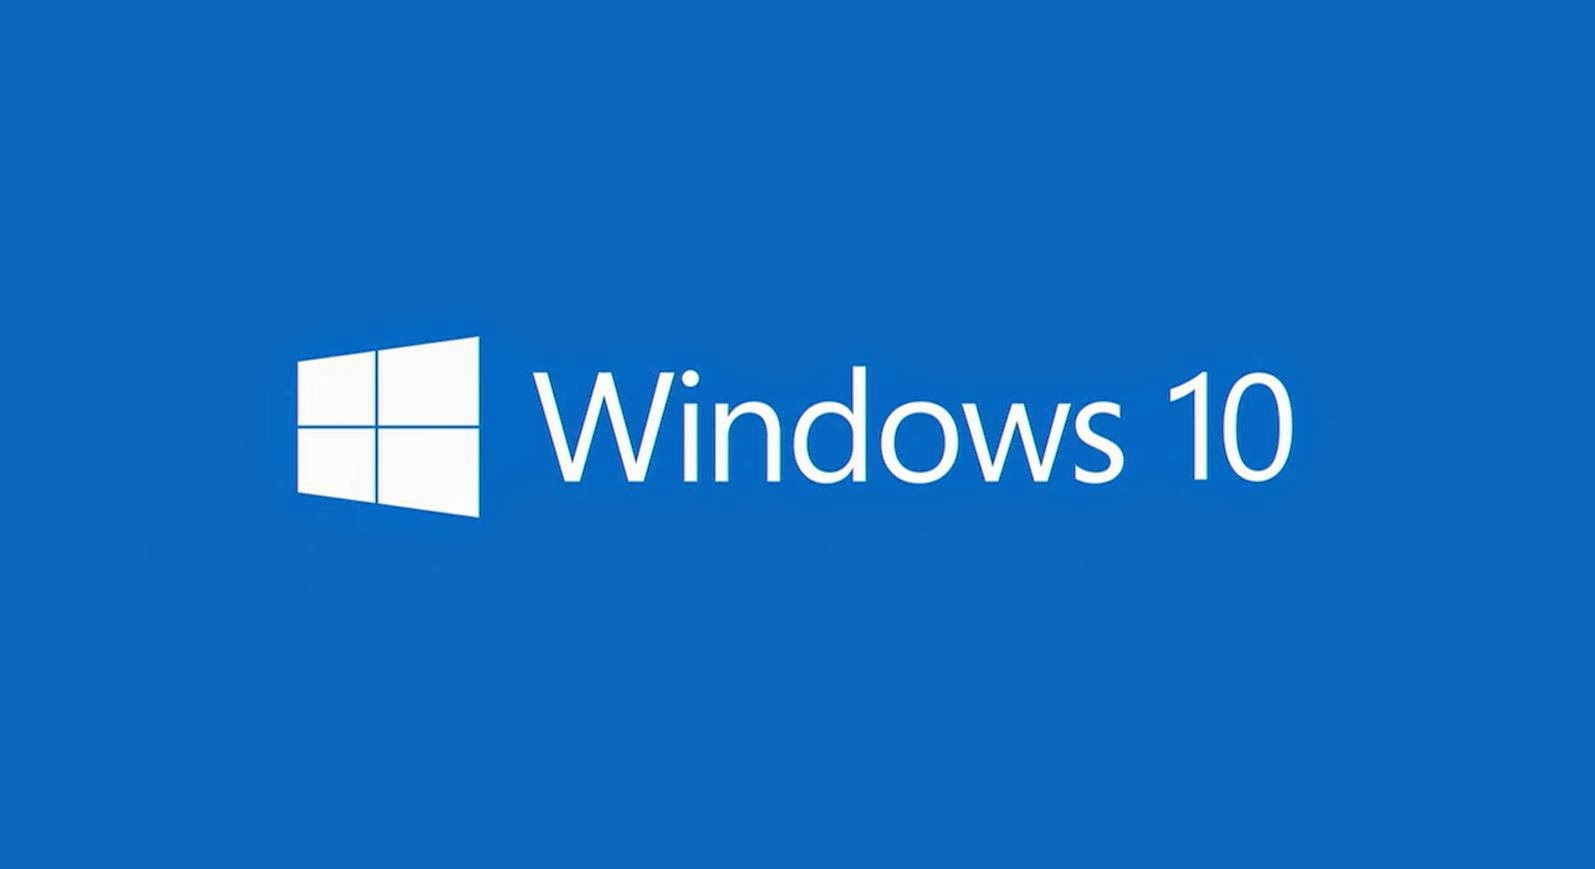 Install Windows 10 x64 on Vmware Workstation